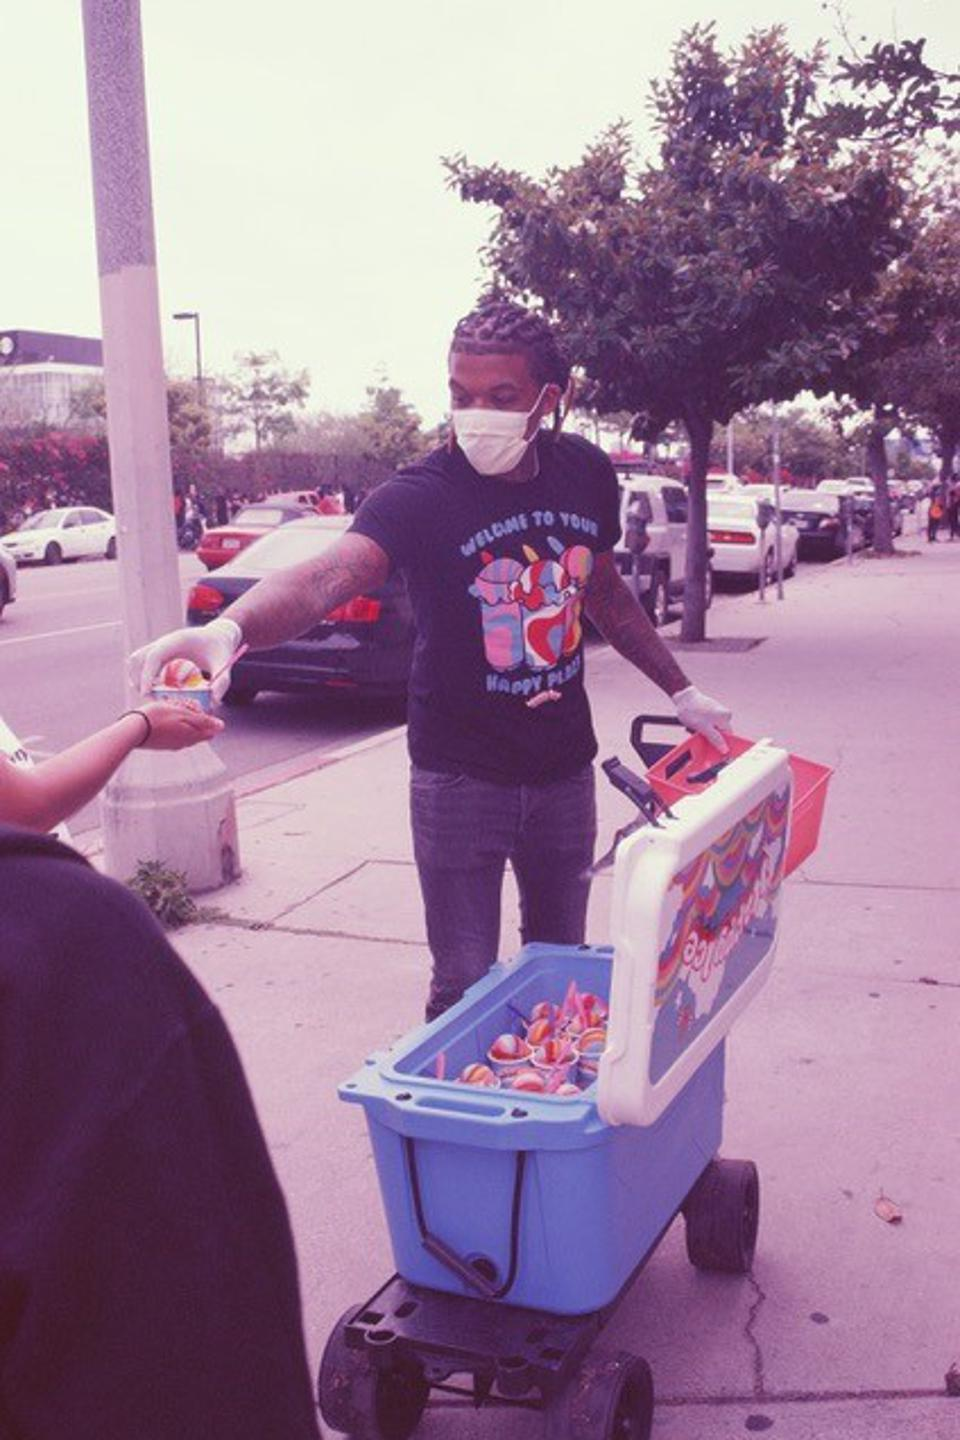 Lemeir Mitchell handing out water ices from Happy Ice during the Black Lives Matter protest in Los Angeles